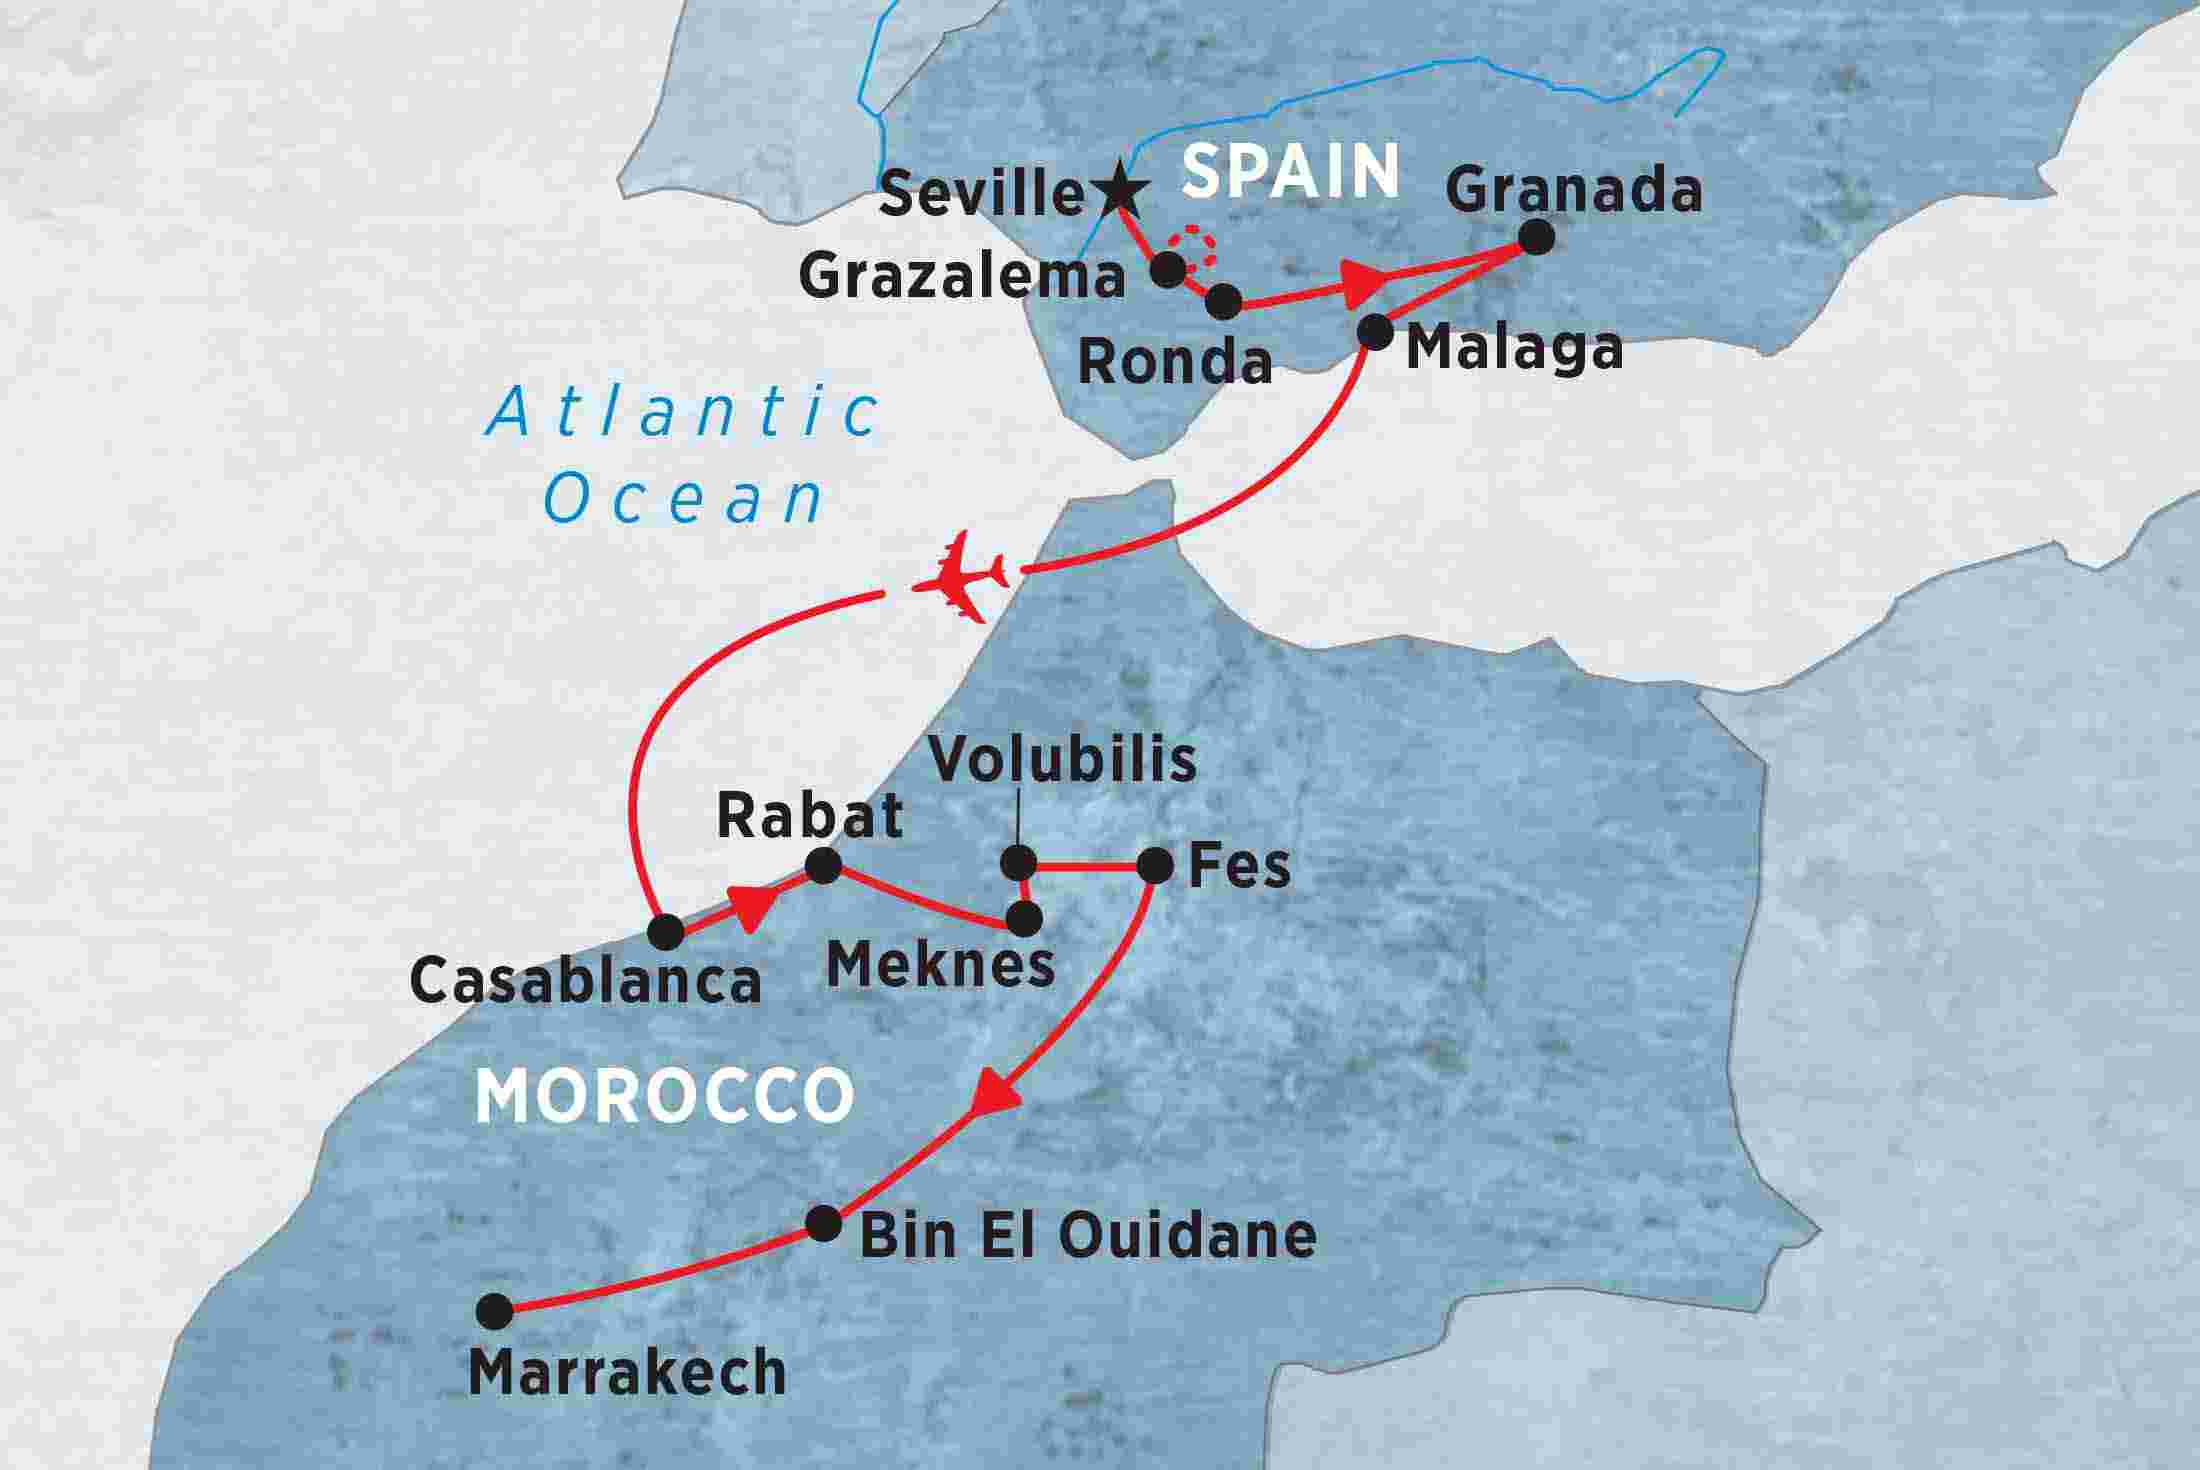 Map Of The South Of Spain.Highlights Of Southern Spain Morocco Overview Highlights Of Southern Spain Morocco